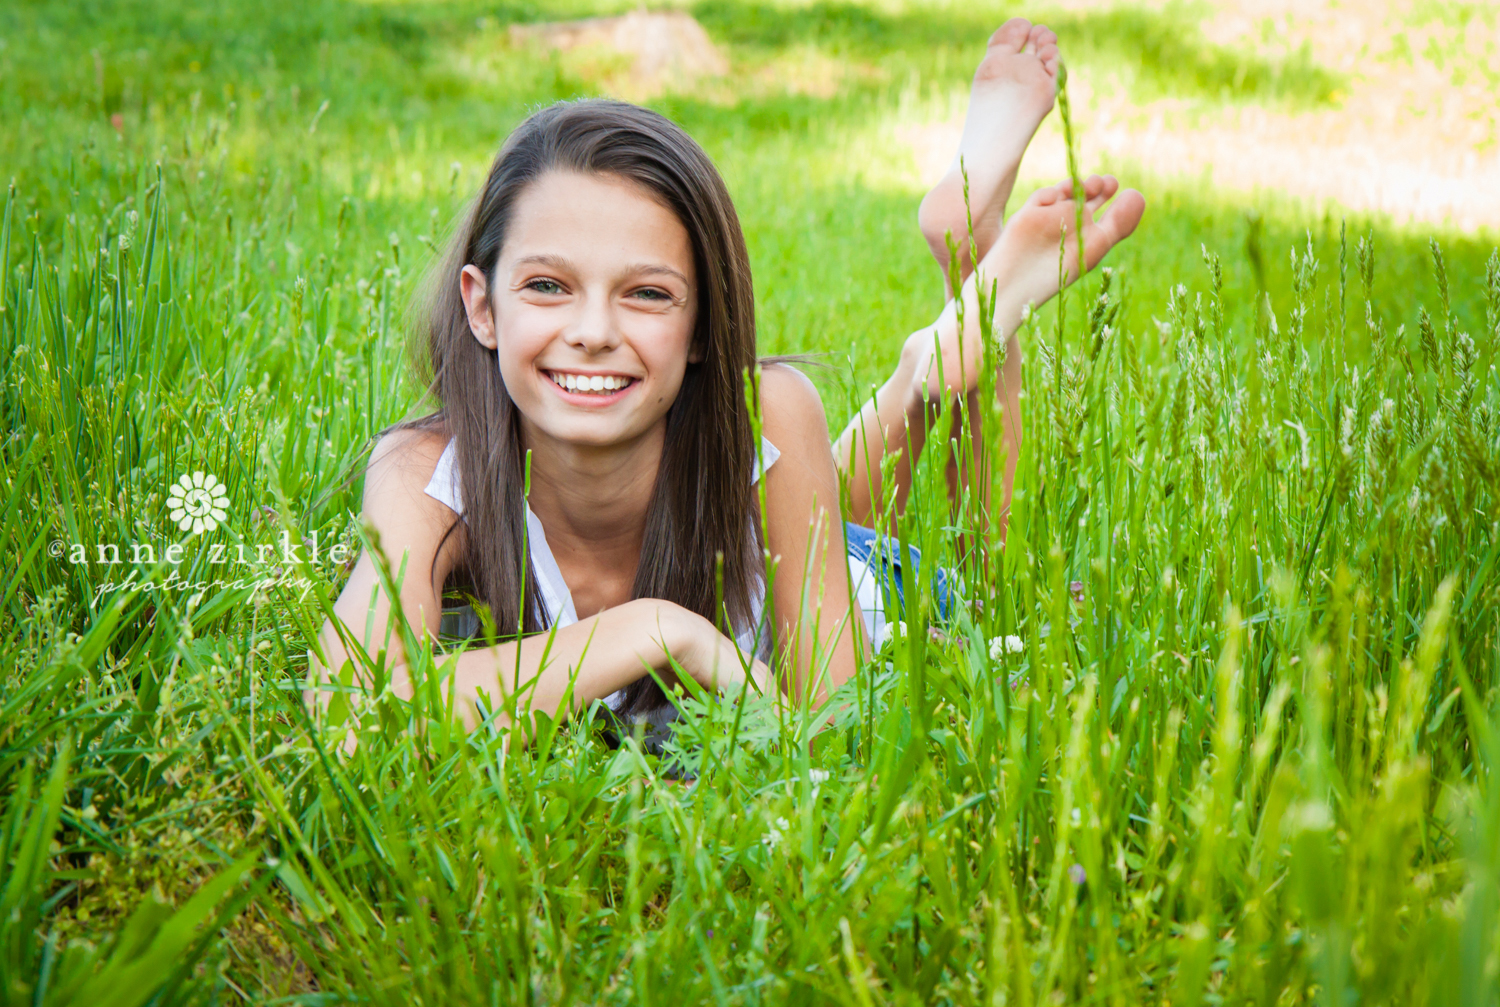 young-teen-girl-lying-in-grass